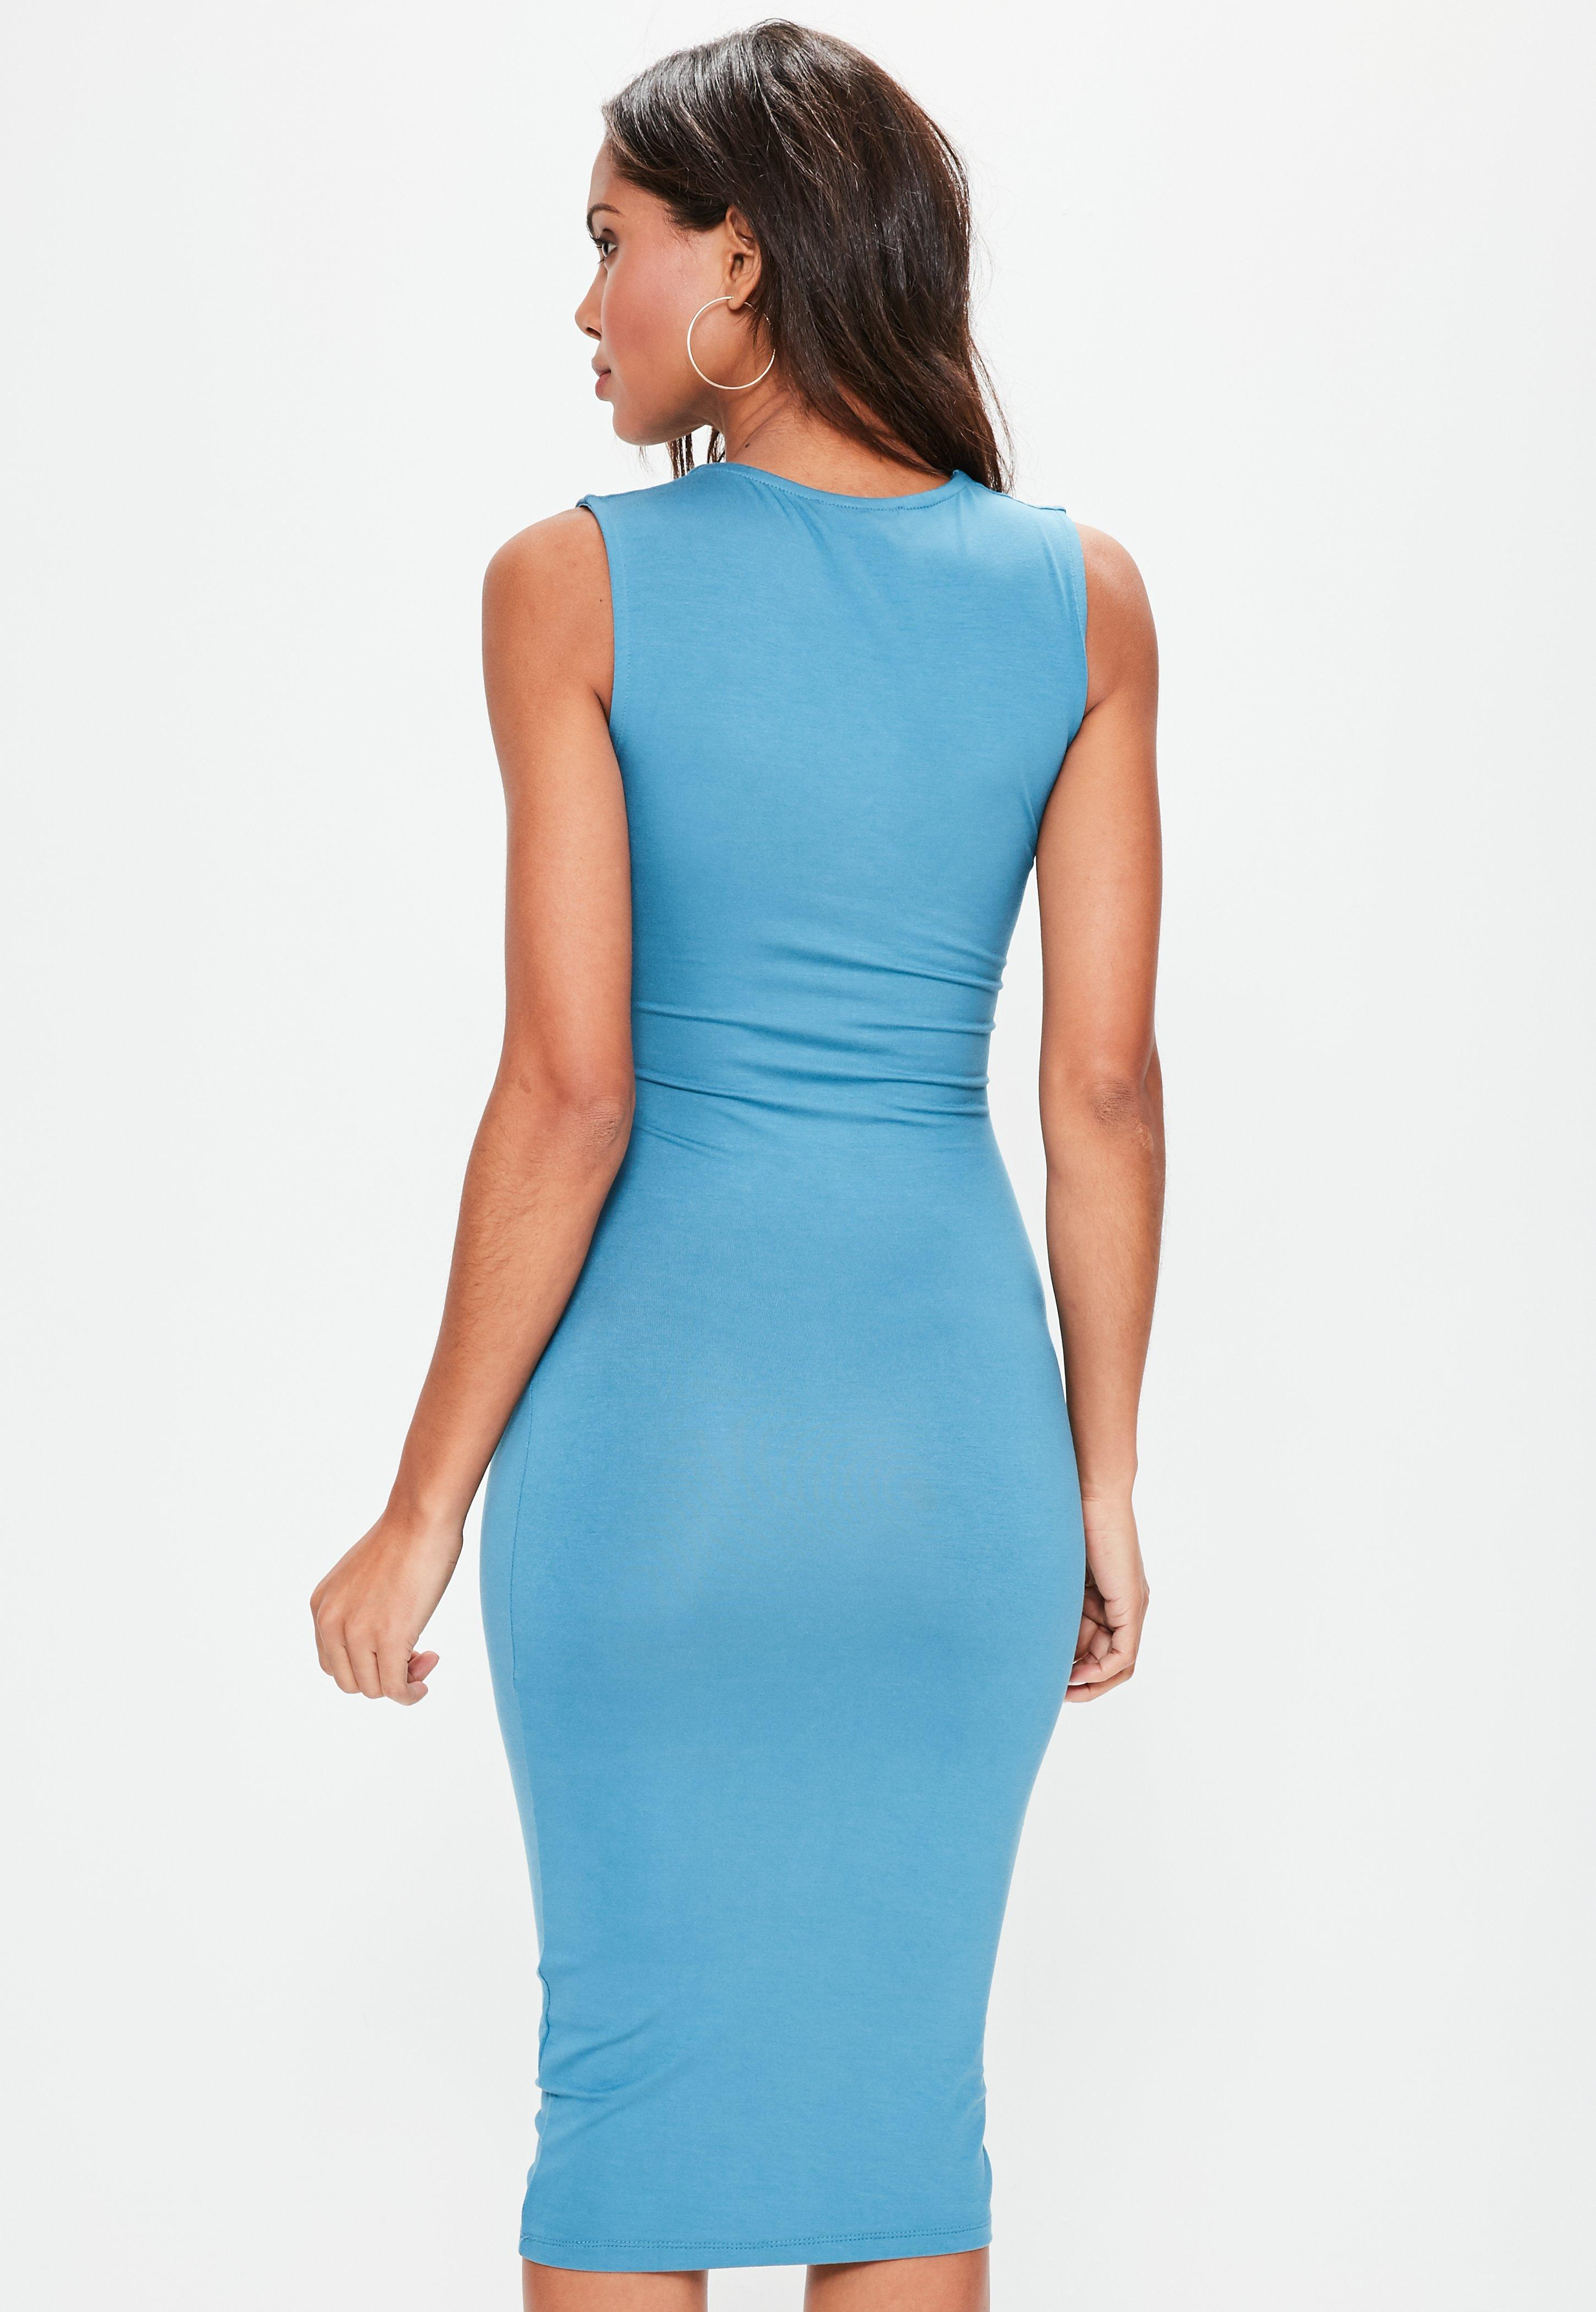 Lyst - Missguided Blue Extreme Plunge Midi Band Dress in Blue 523456fea